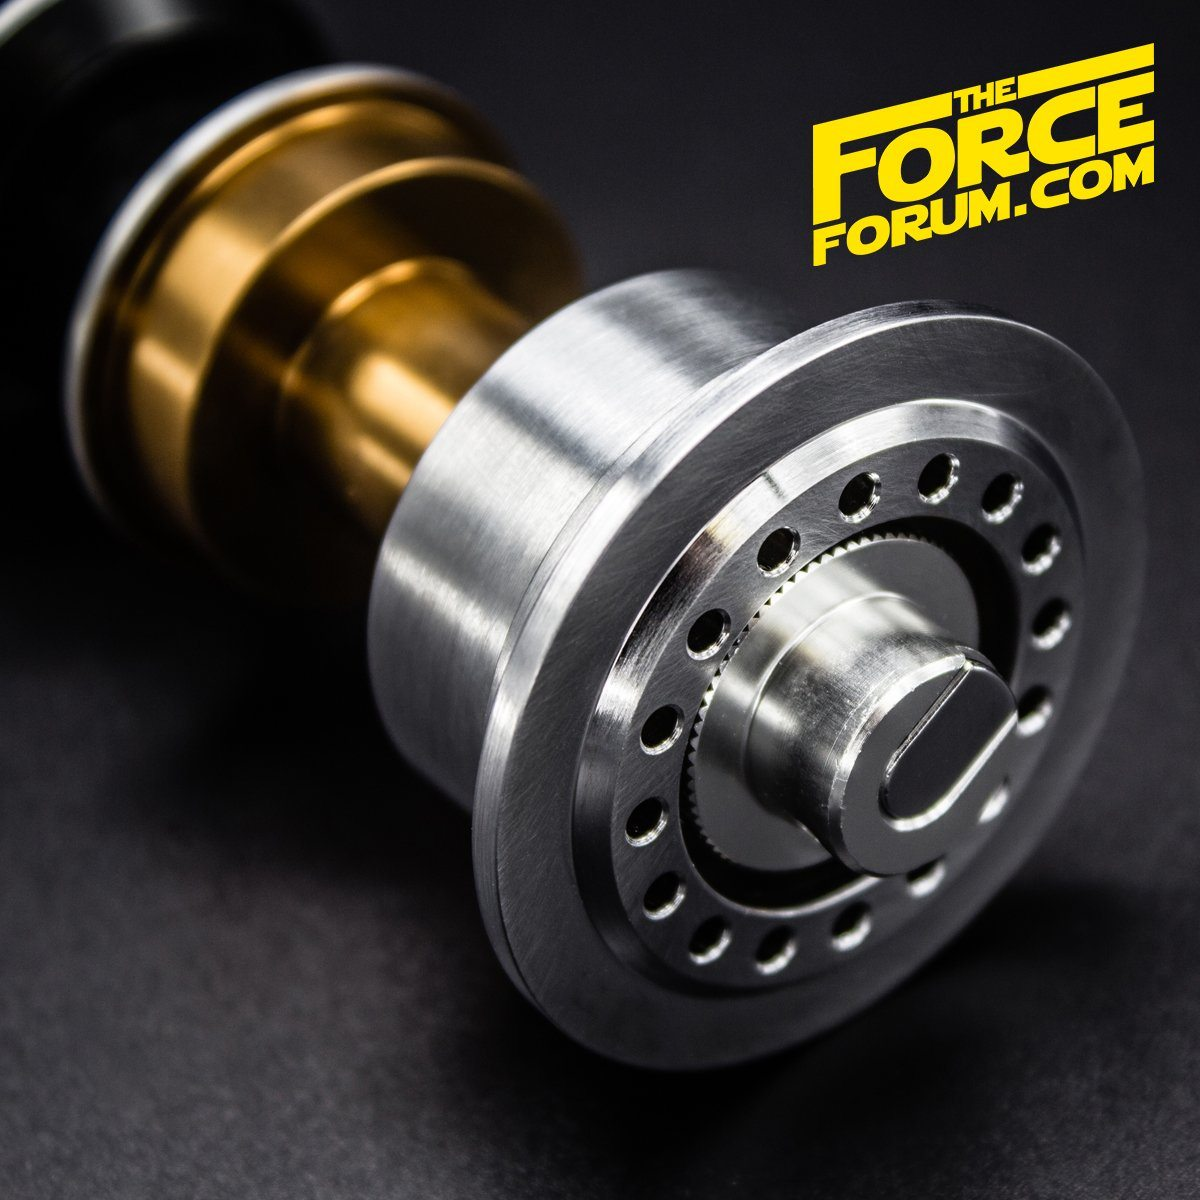 Korbanth LS6 Gullwing saber hilt - The Force Forum